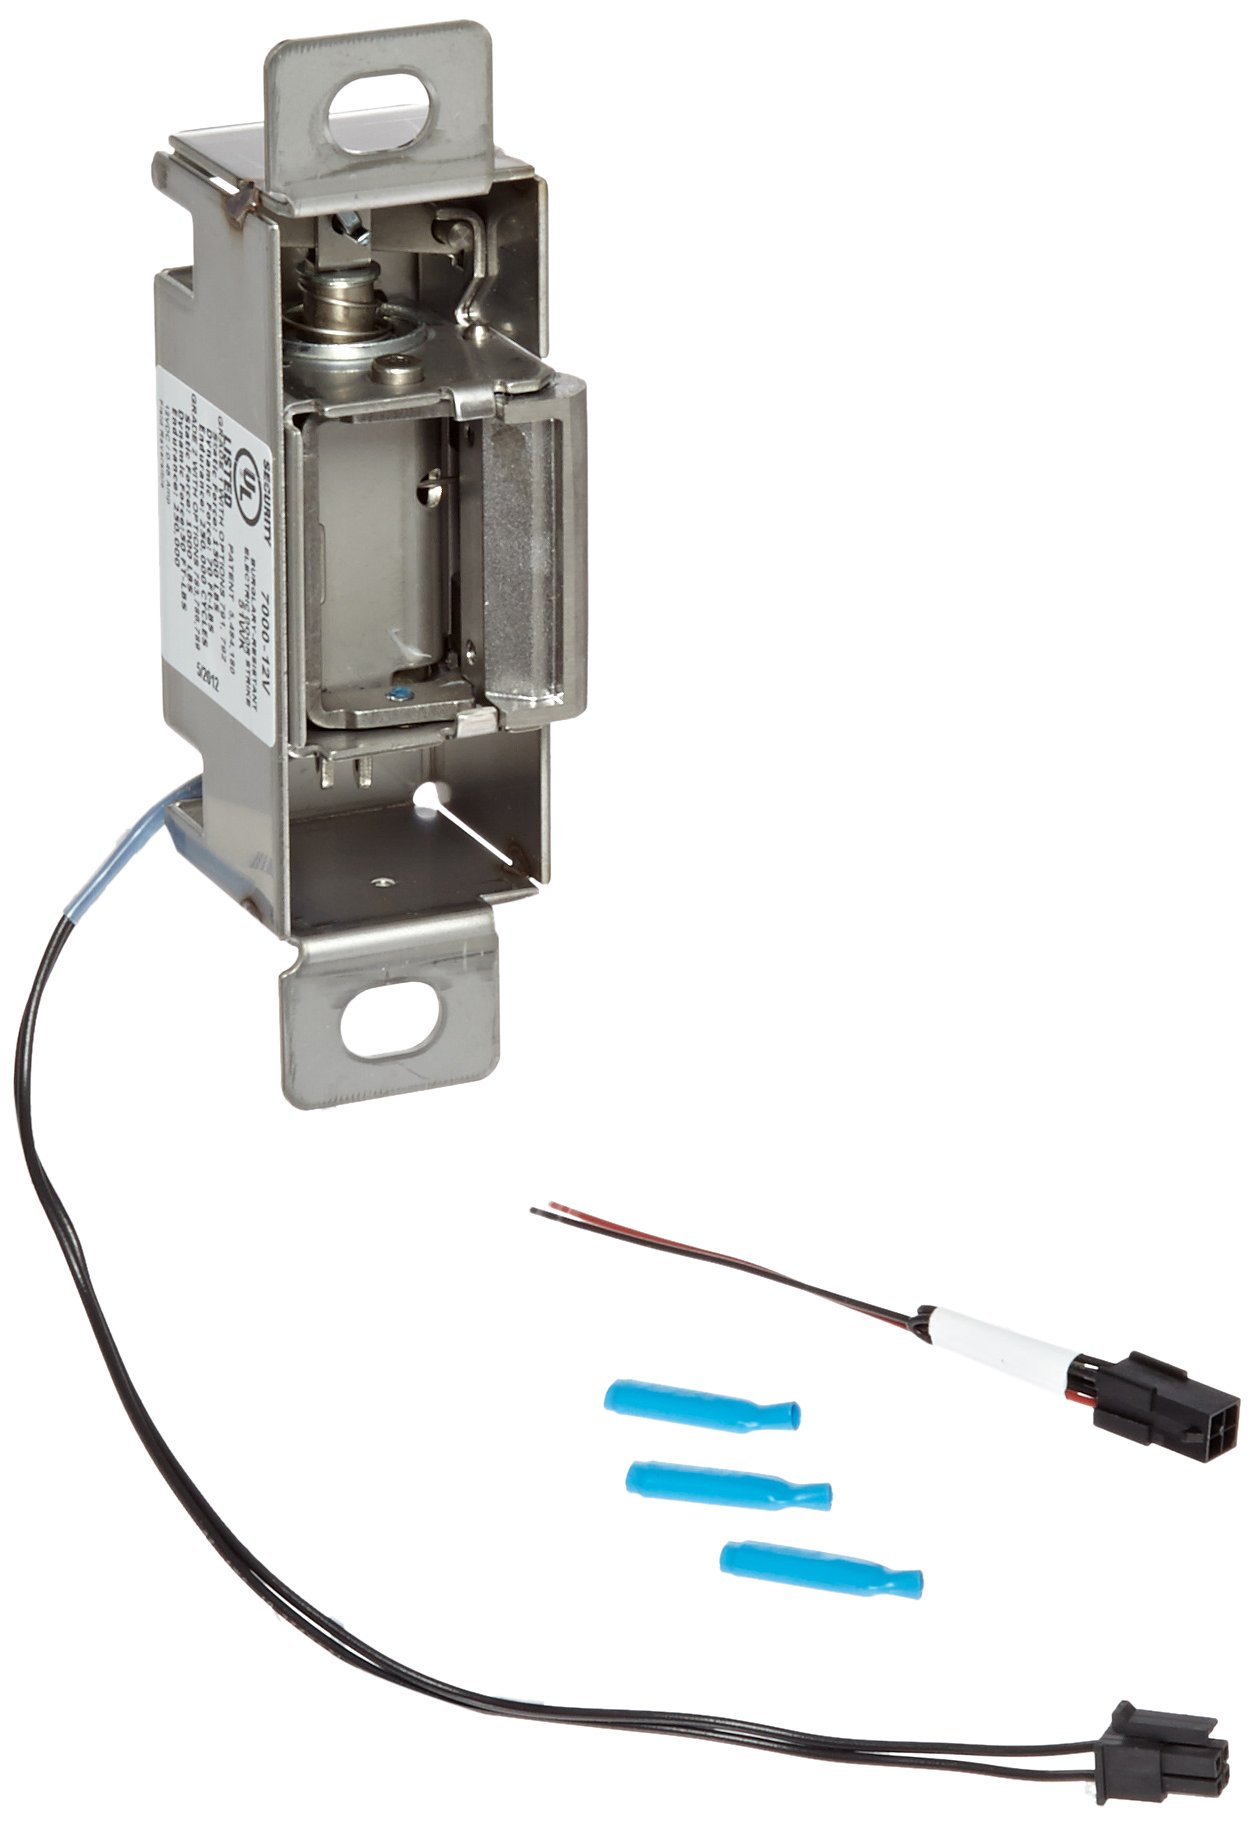 HES 7000 Series Stainless Steel Highly Durable and Versatile Electric Strike Body, 12 Volts, Satin Stainless Steel Finish